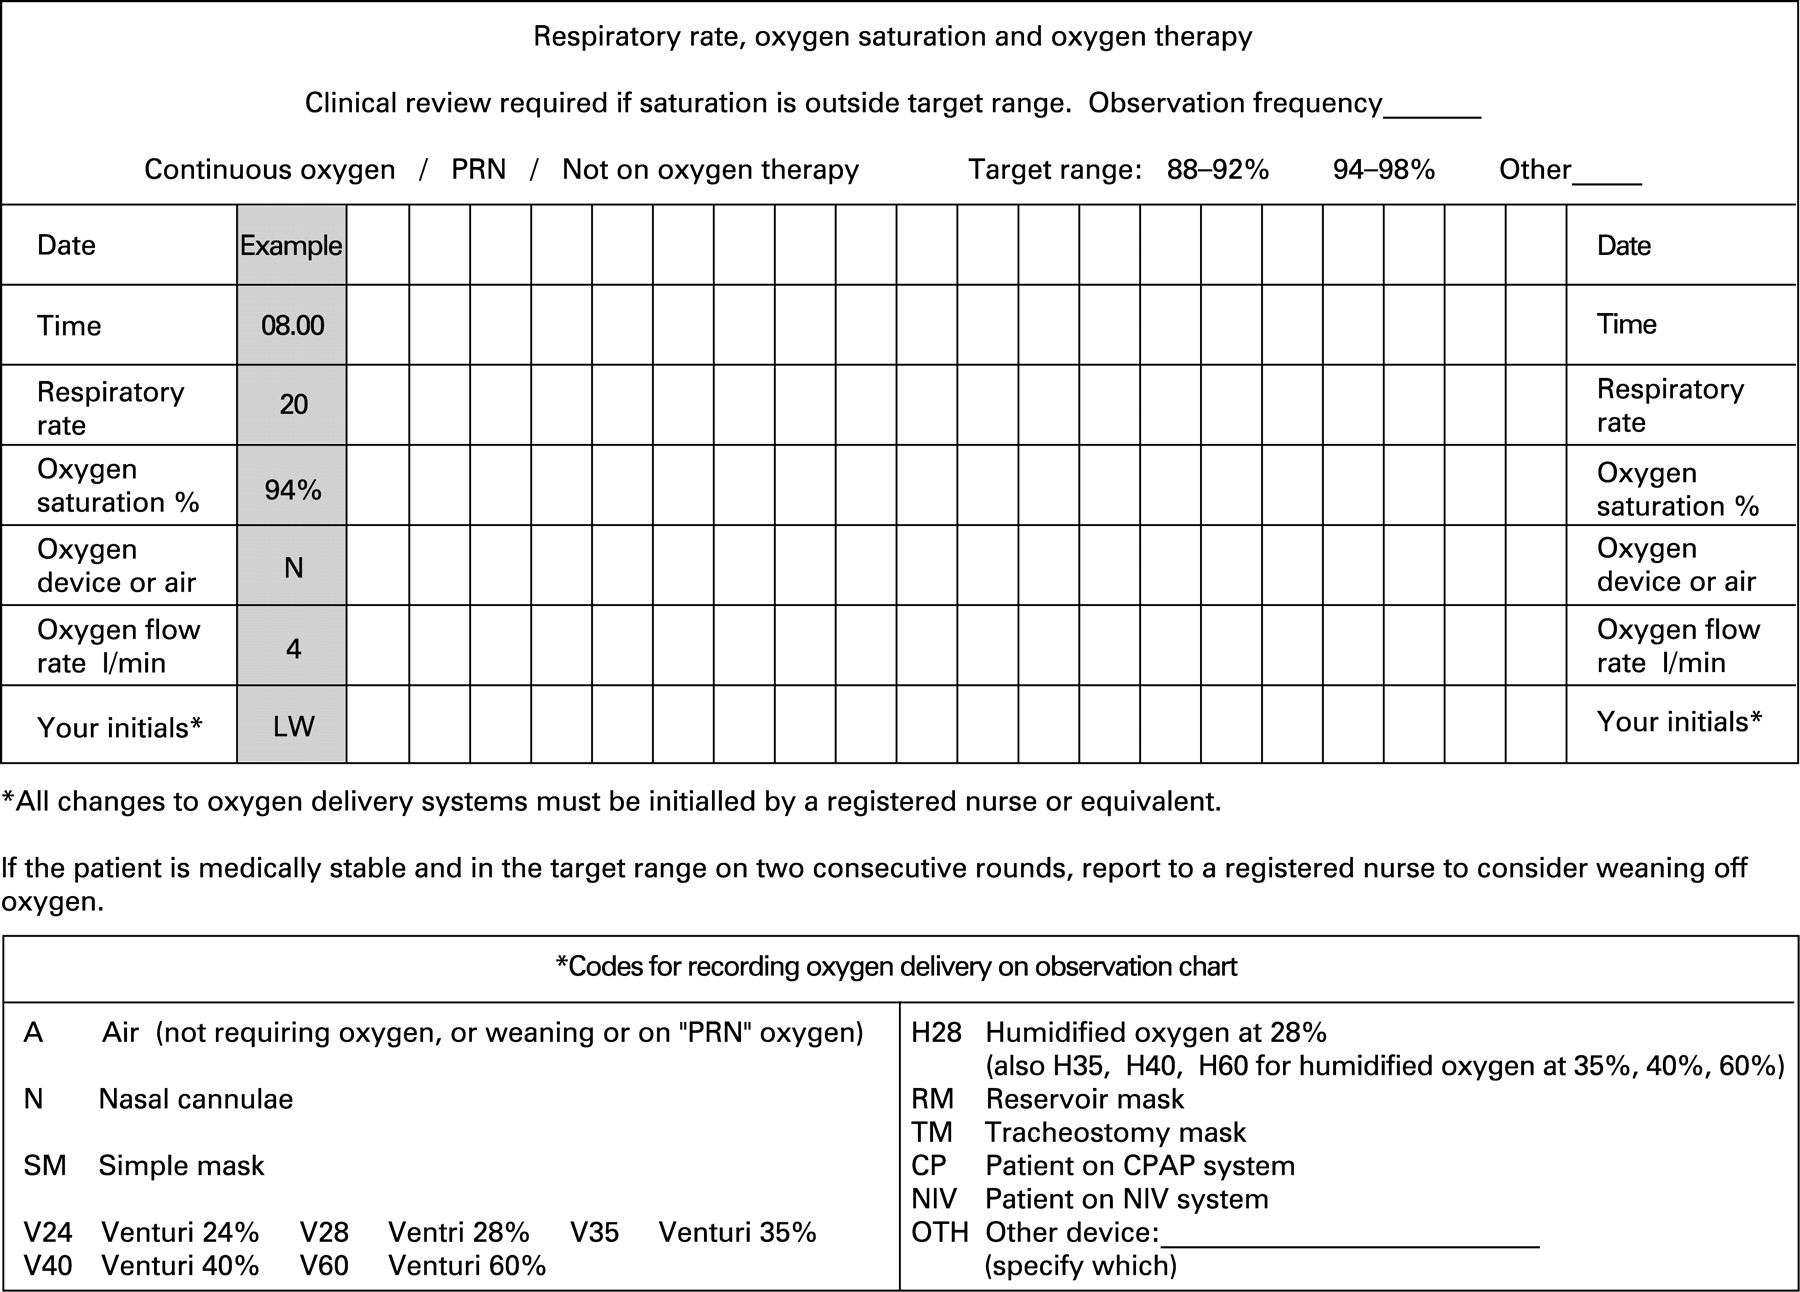 Bts guideline for emergency oxygen use in adult patients thorax nvjuhfo Images